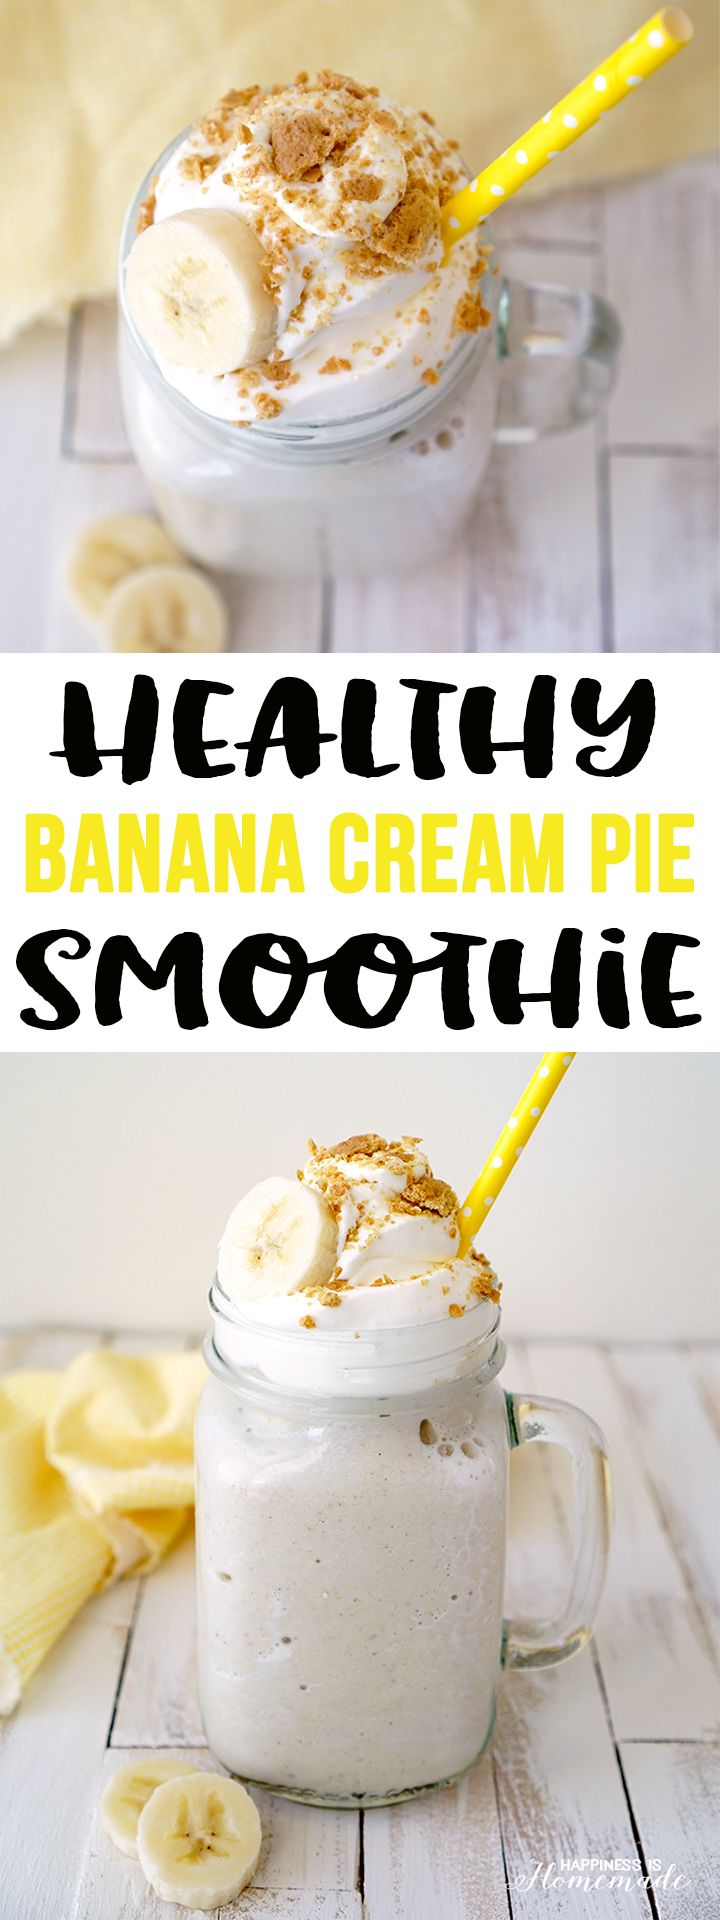 Healthy Banana Cream Pie Protein Smoothie